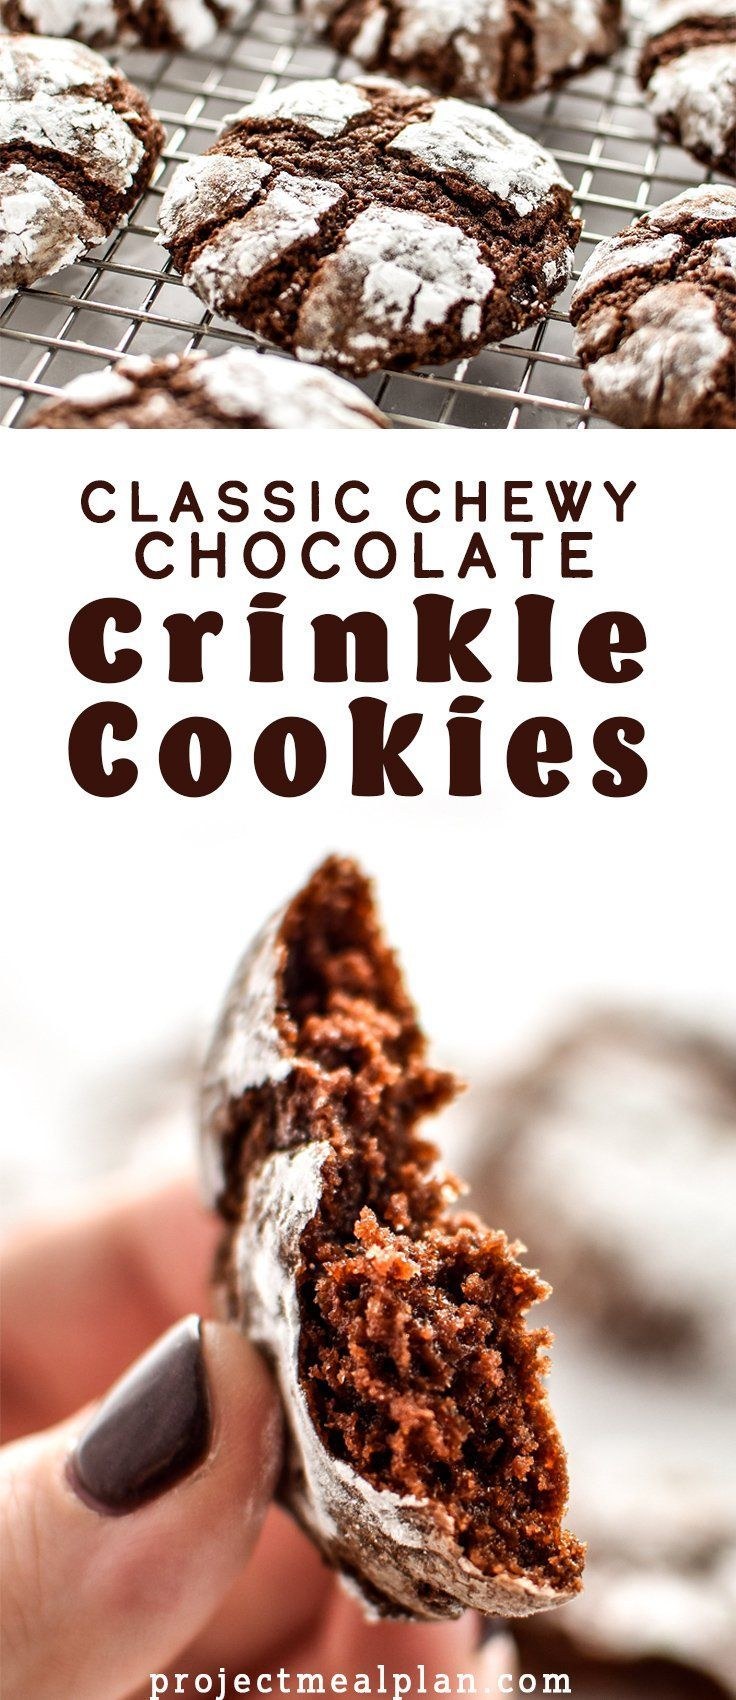 Classic Chewy Chocolate Crinkle Cookies - The chewiest, fudgiest, softest cookies that are rolled in powdered sugar and baked to perfection! - ProjectMealPlan.com #holidaycookies #chocolatecookies #crinklecookies